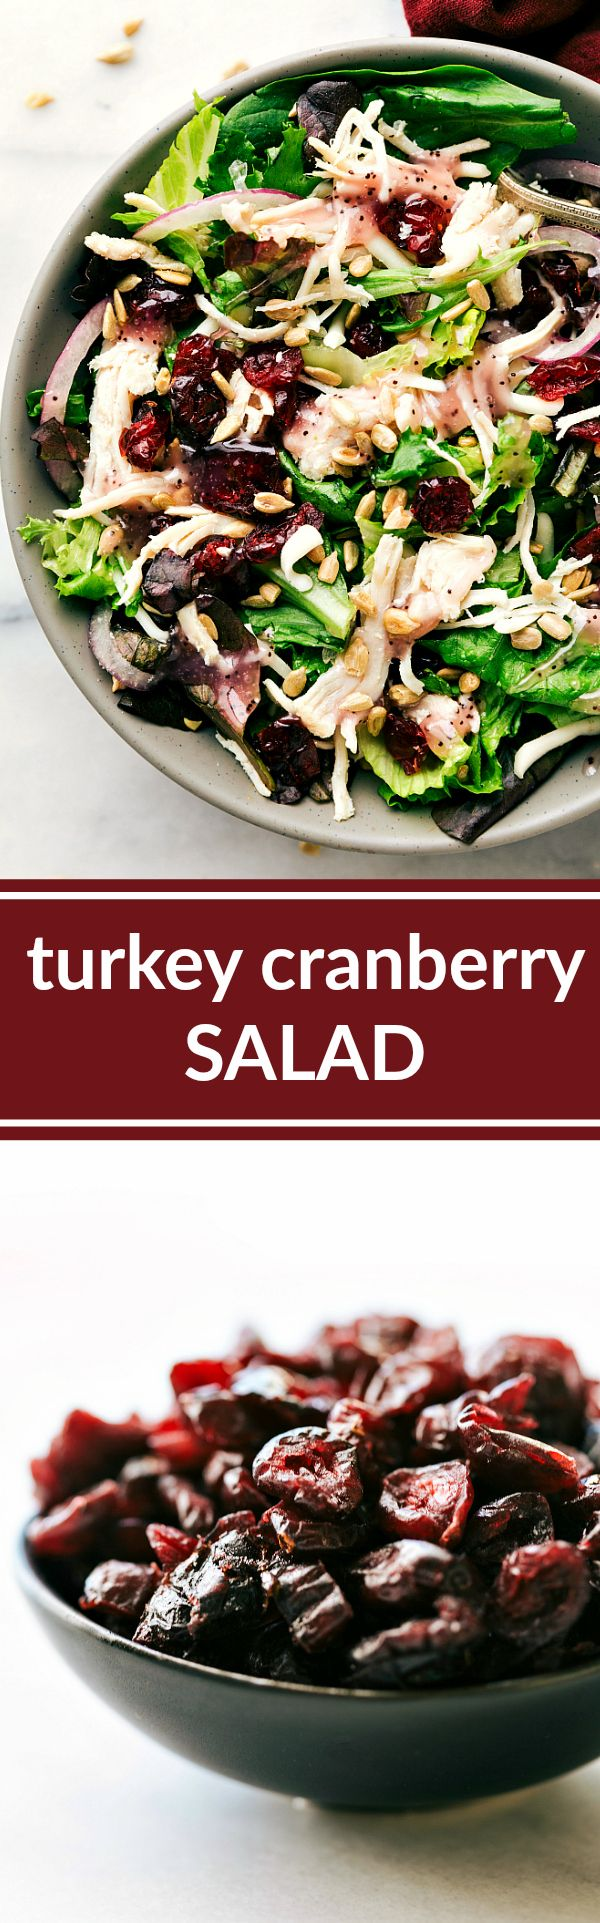 Turkey, Cranberry, and Sunflower Seed Salad (Kneader's Copycat